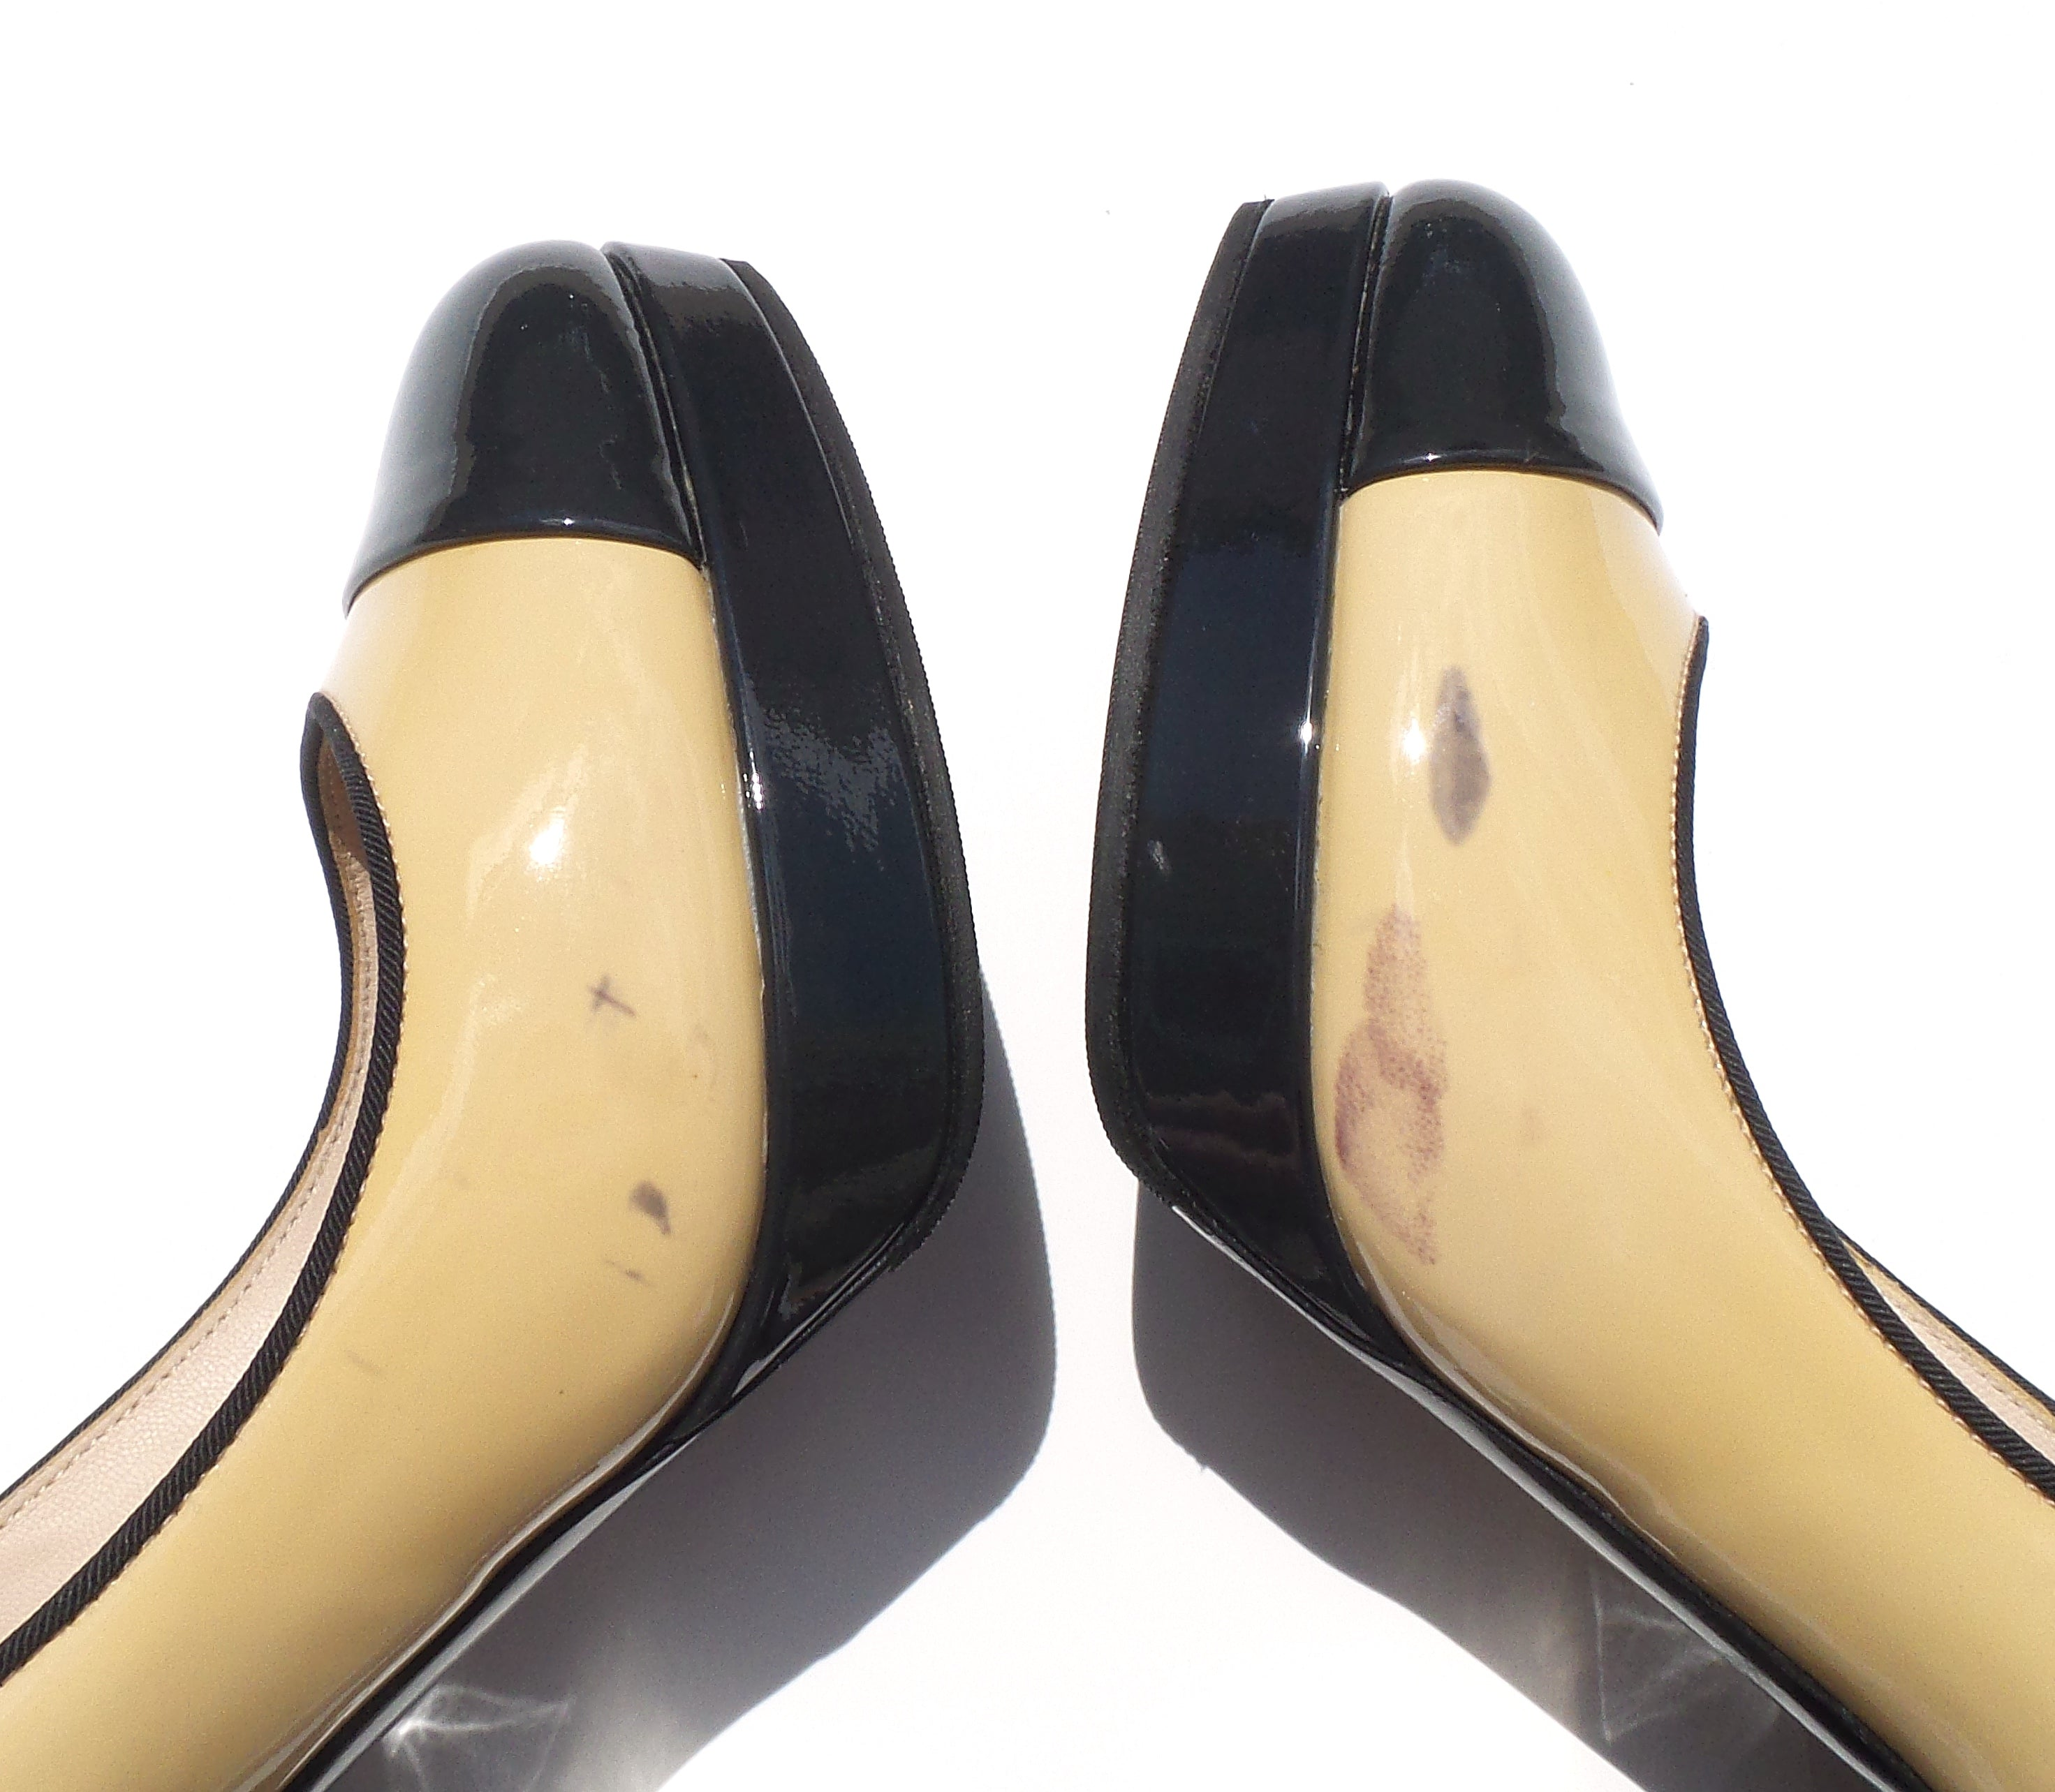 CHANEL Beige Black Navy Patent Leather Cap Toe Platform Silver Heels Pumps 36.5